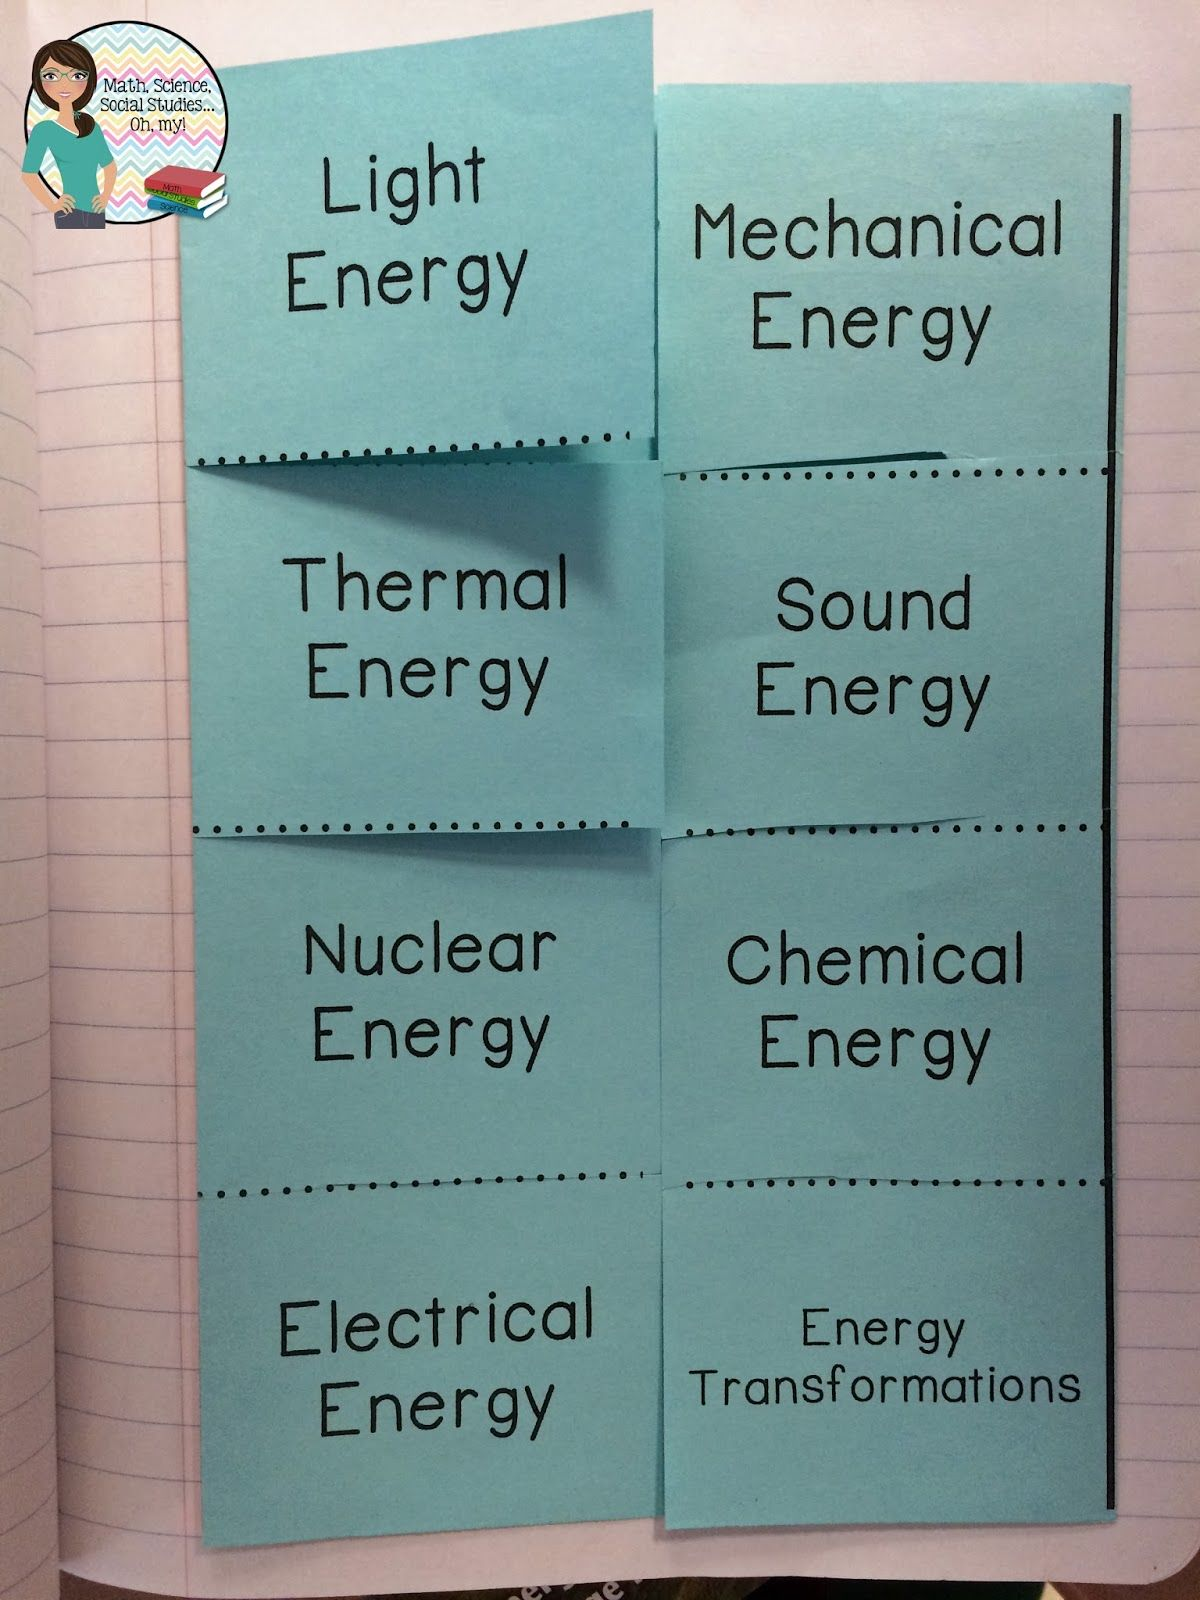 types of energy interactive foldable graphic organizer. they were